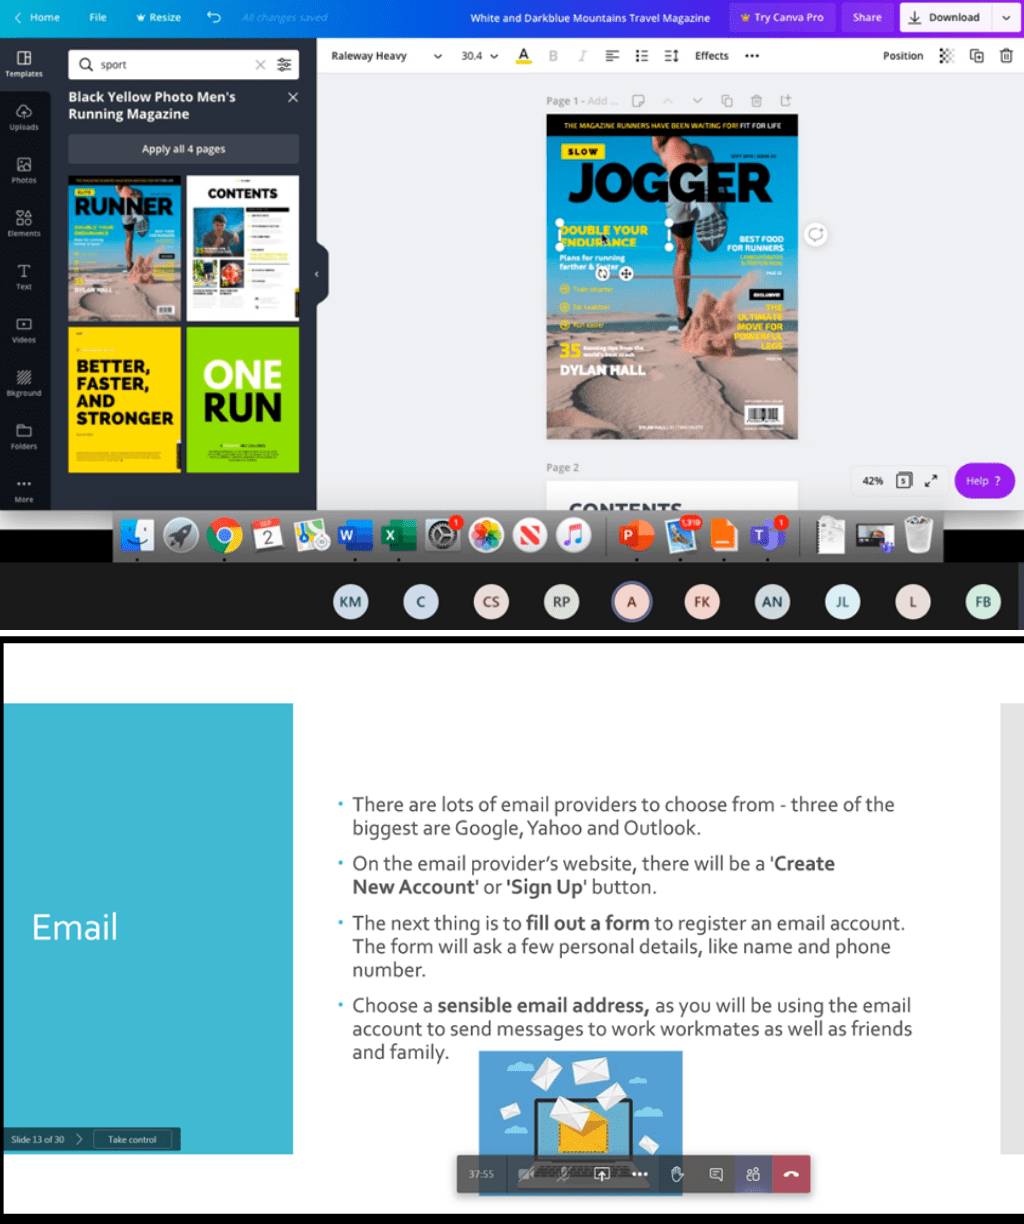 Canva, design tool, Support, employment, training, skills, building, skills building, skills building, work, confidence, project,man, men, case study, success story, successful, achievement,